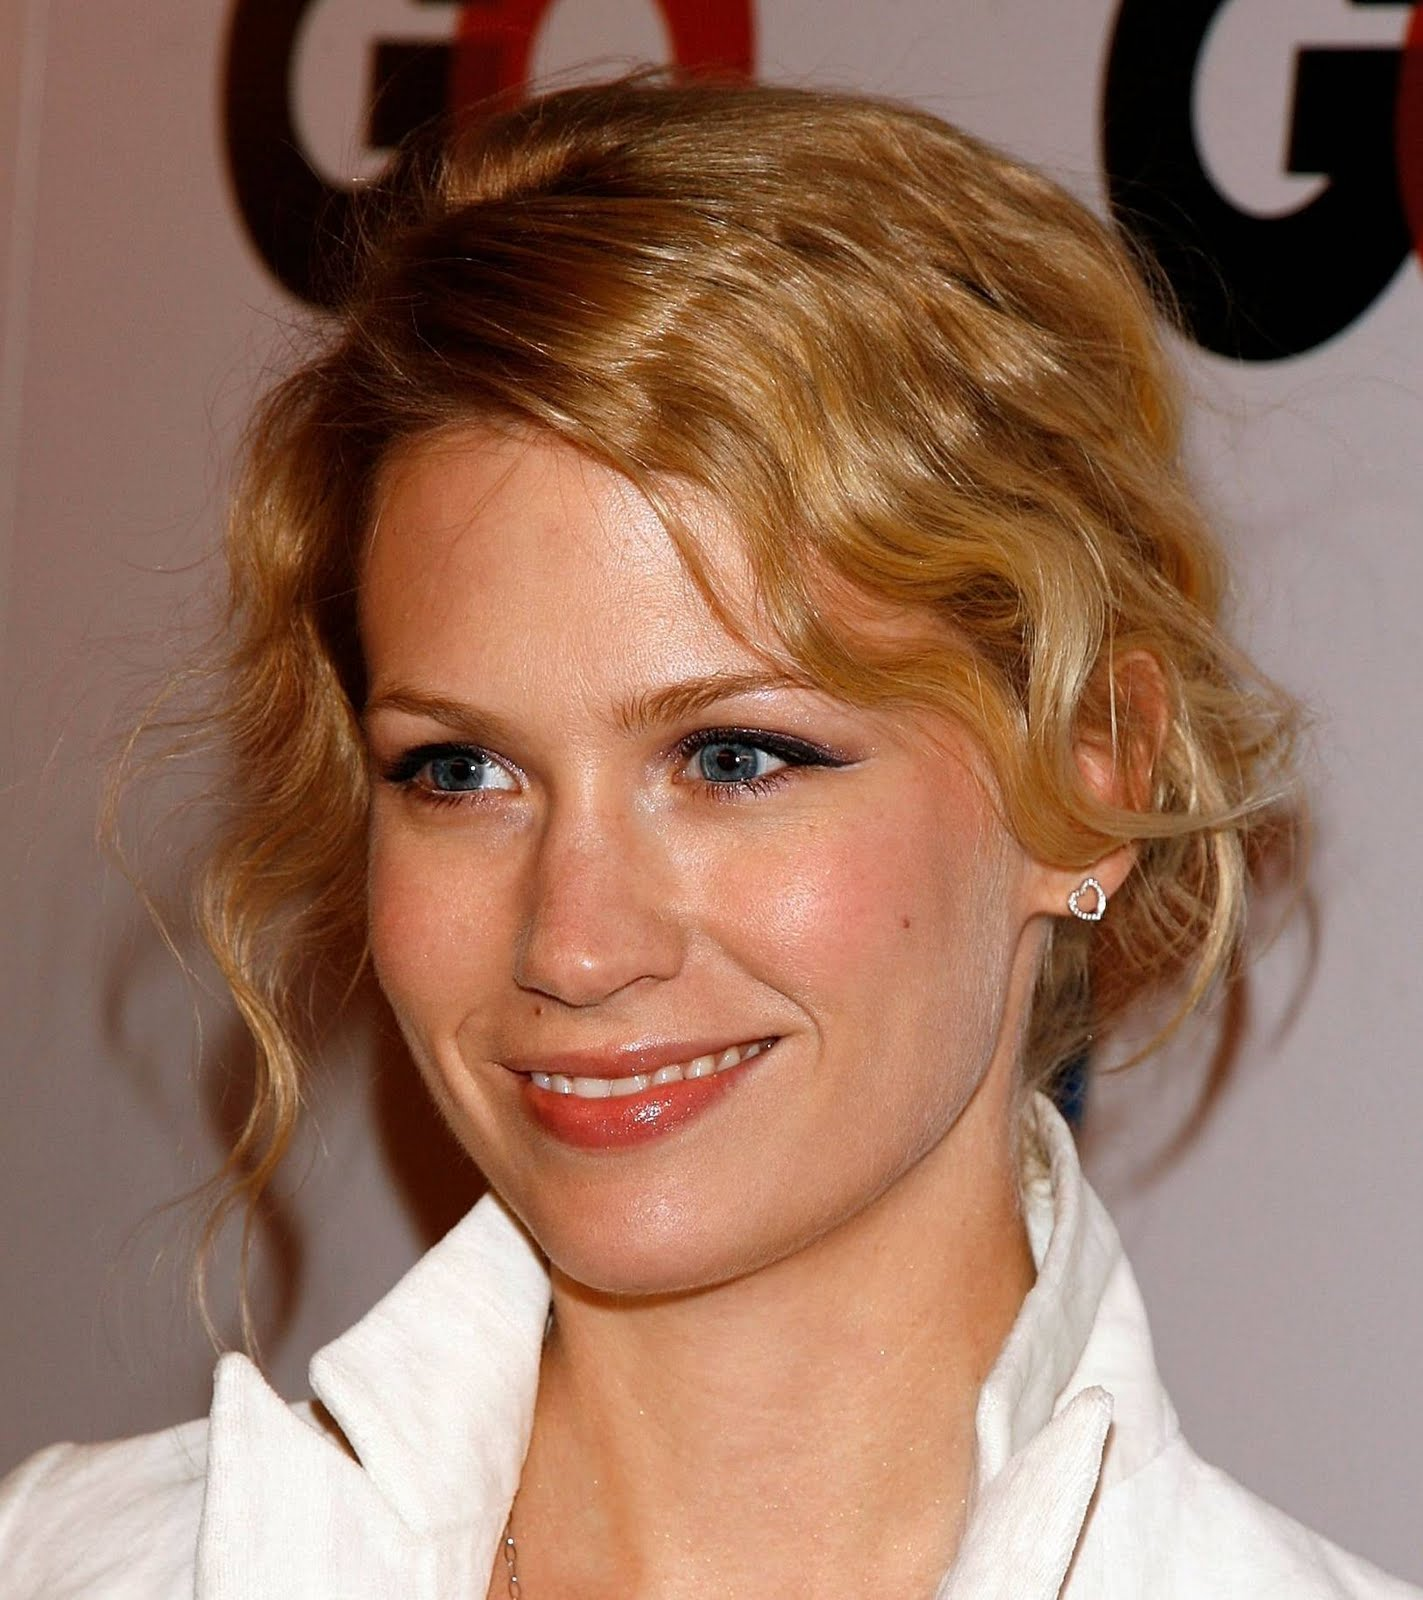 http://4.bp.blogspot.com/-D2W8mGwHy0U/TgBOzo_DBuI/AAAAAAAACSc/sa2iMgX2ZRc/s1600/January-Jones-Latest-Hairstyles-2011-2.jpg